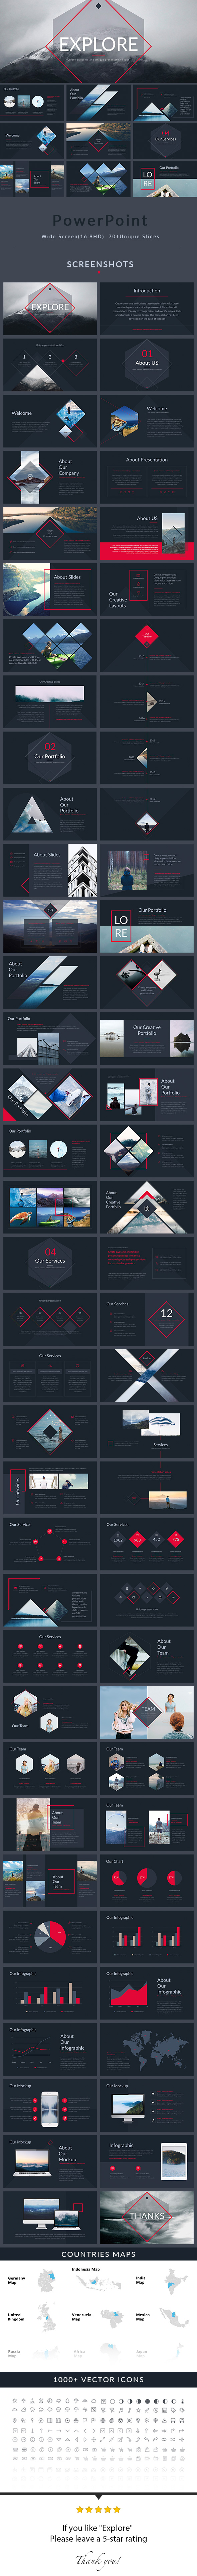 Explore - PowerPoint Presentation Template - Creative PowerPoint Templates